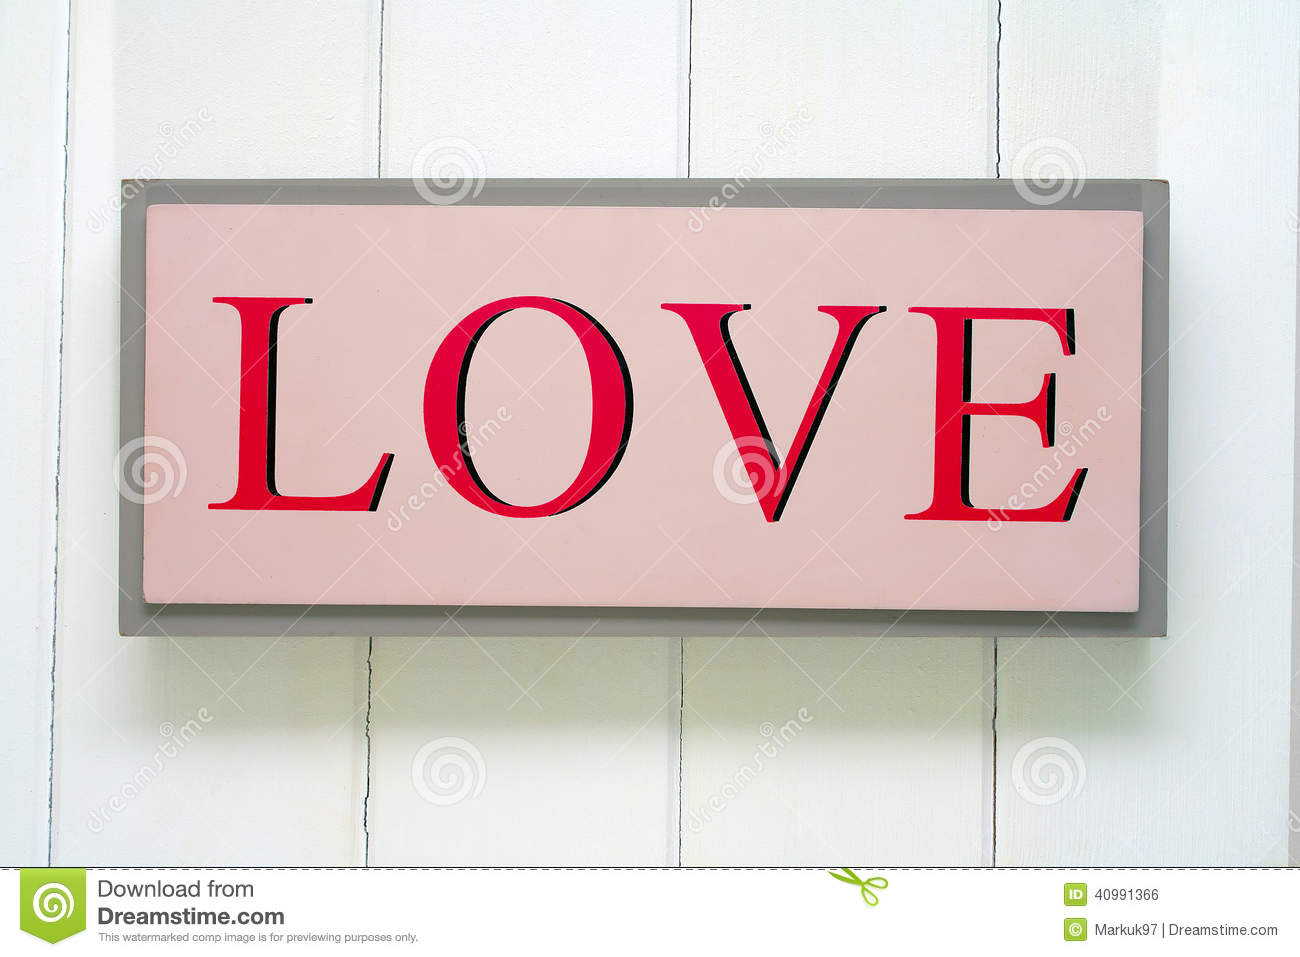 Love sign stock photo image 40991366 for Love sign